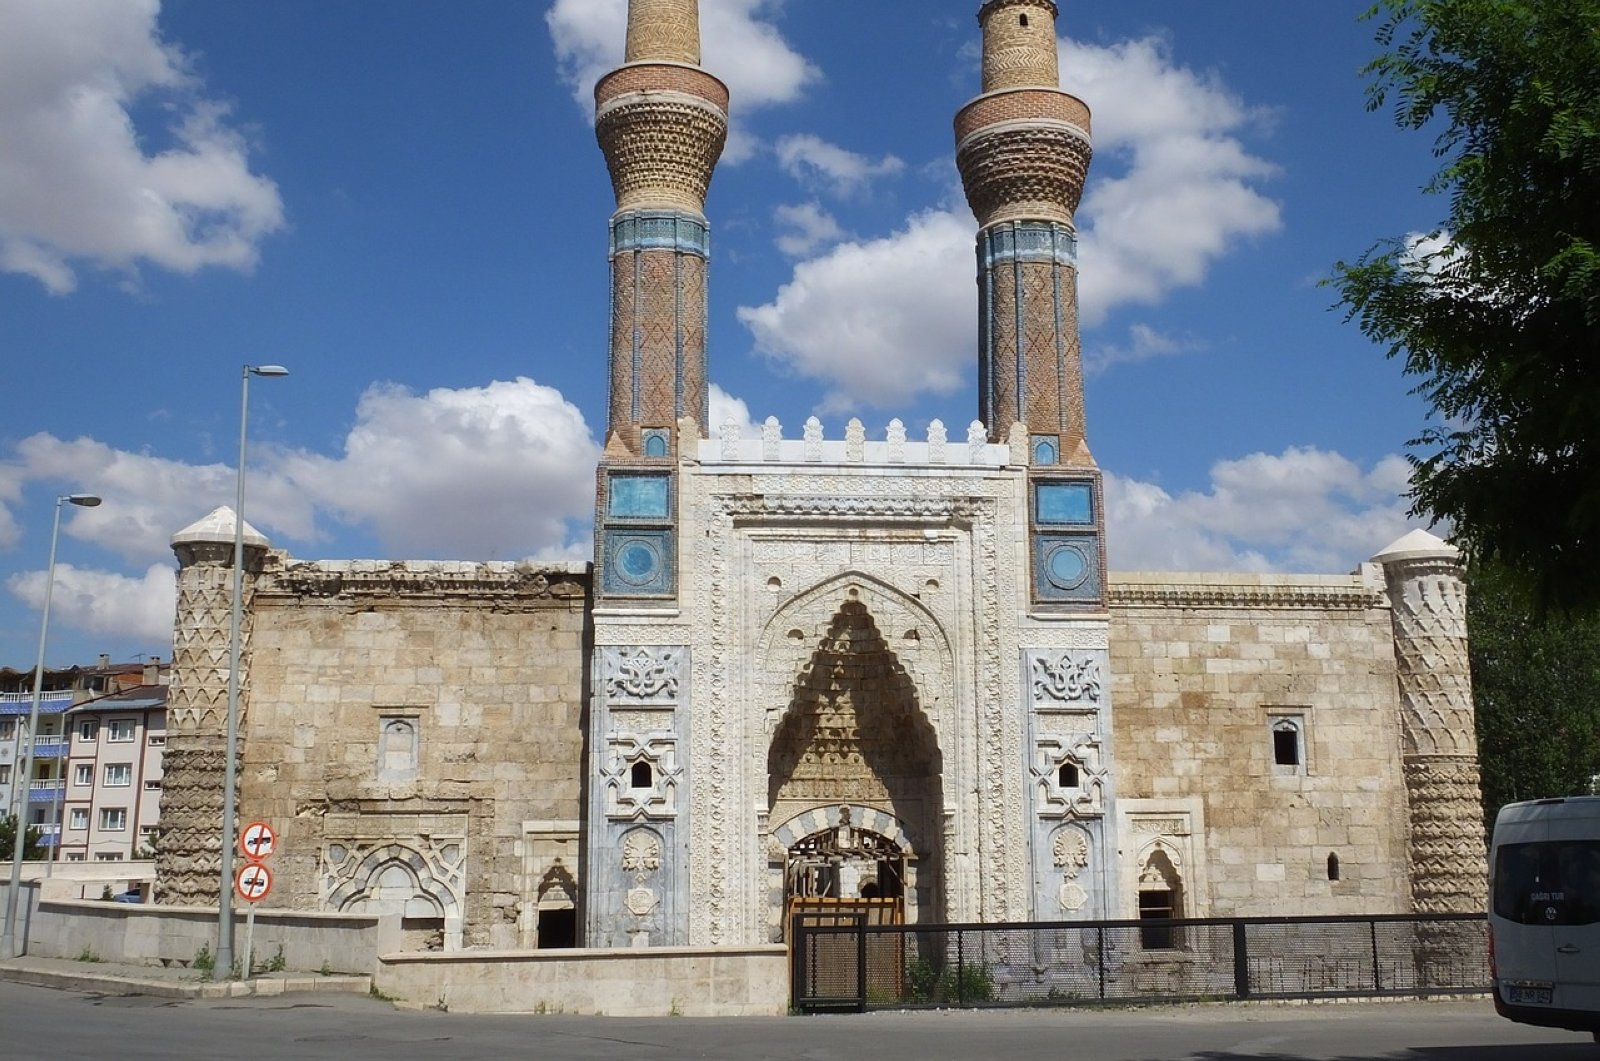 The Gök Medrese was built per the order of Vizier Sâhib Ata Fahreddin Ali in 1271 during the reign of Kaykhusraw III.